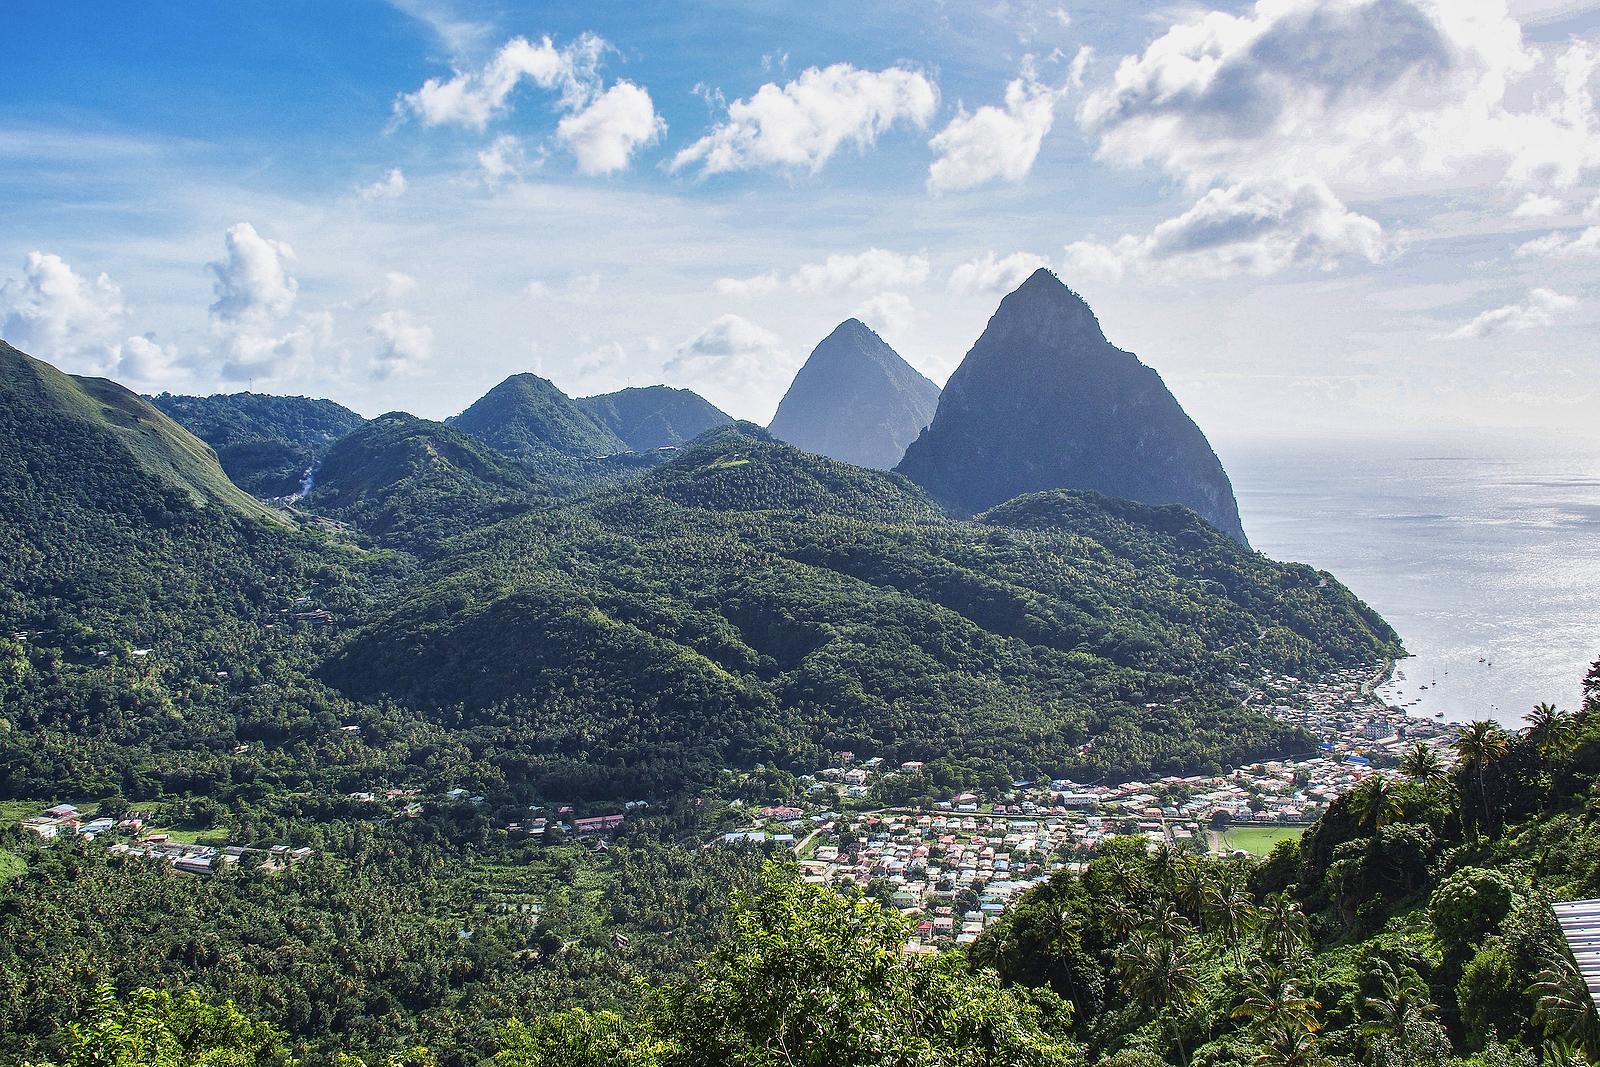 View of the Pitons in St Lucia